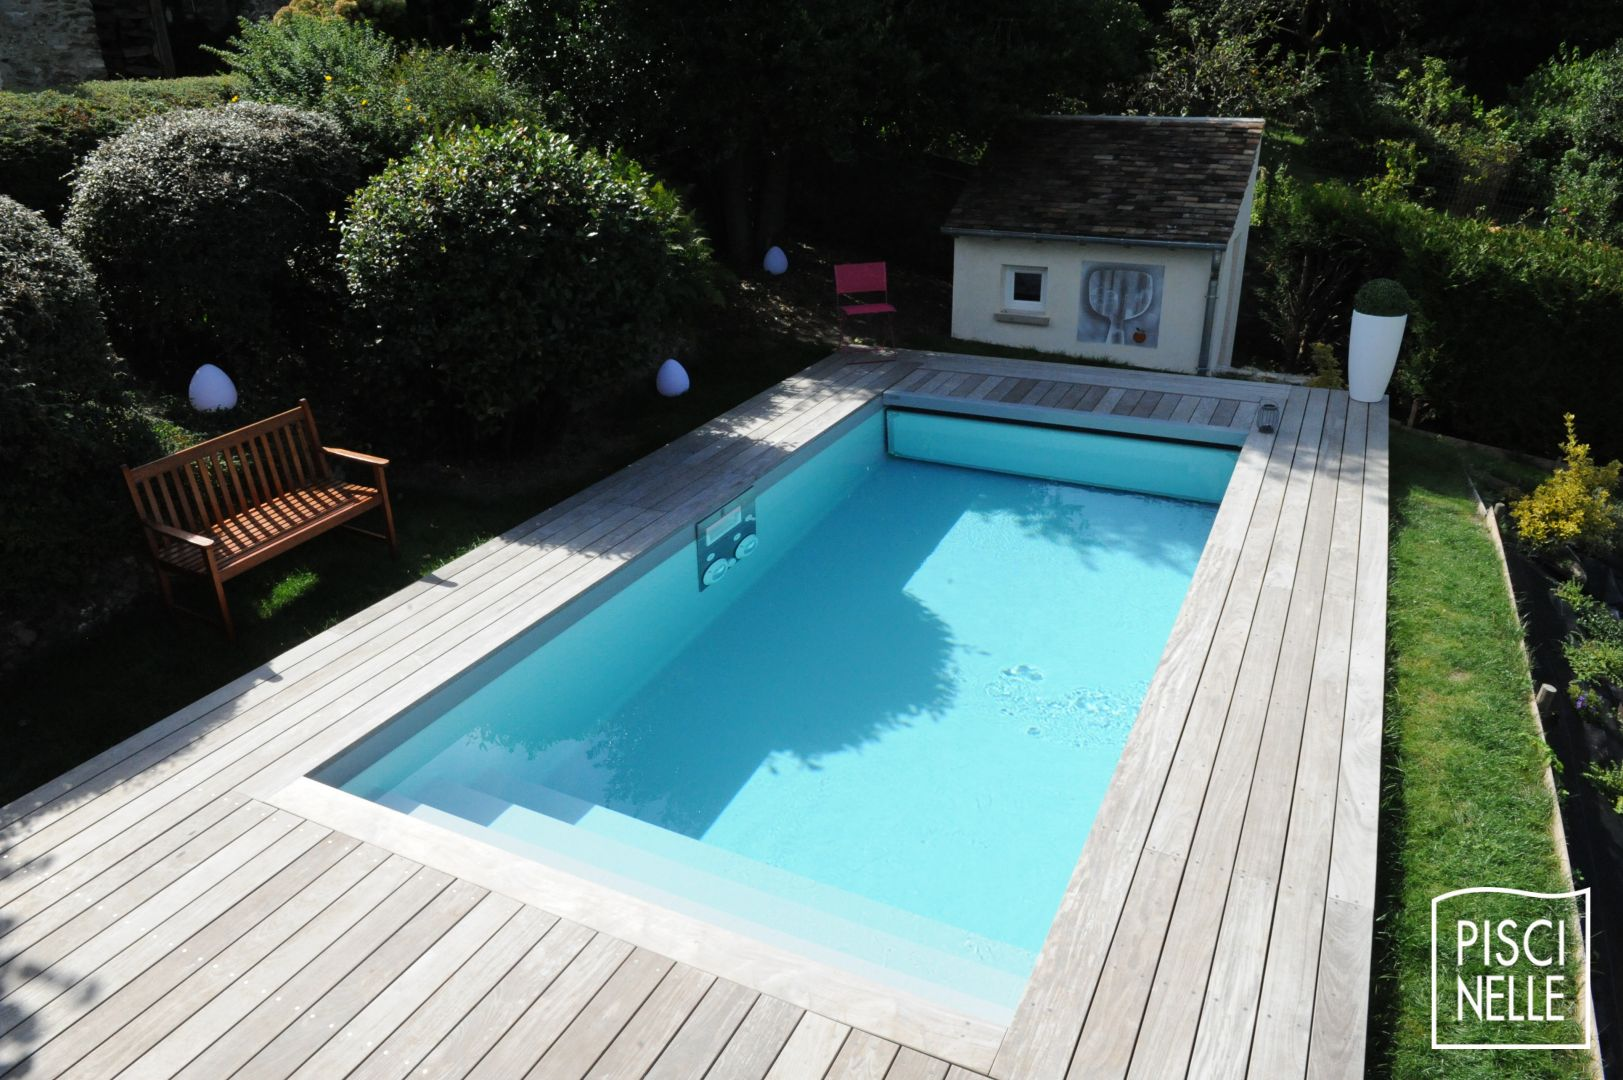 Petite piscine design rectangulaire conviviale for Petite piscine design